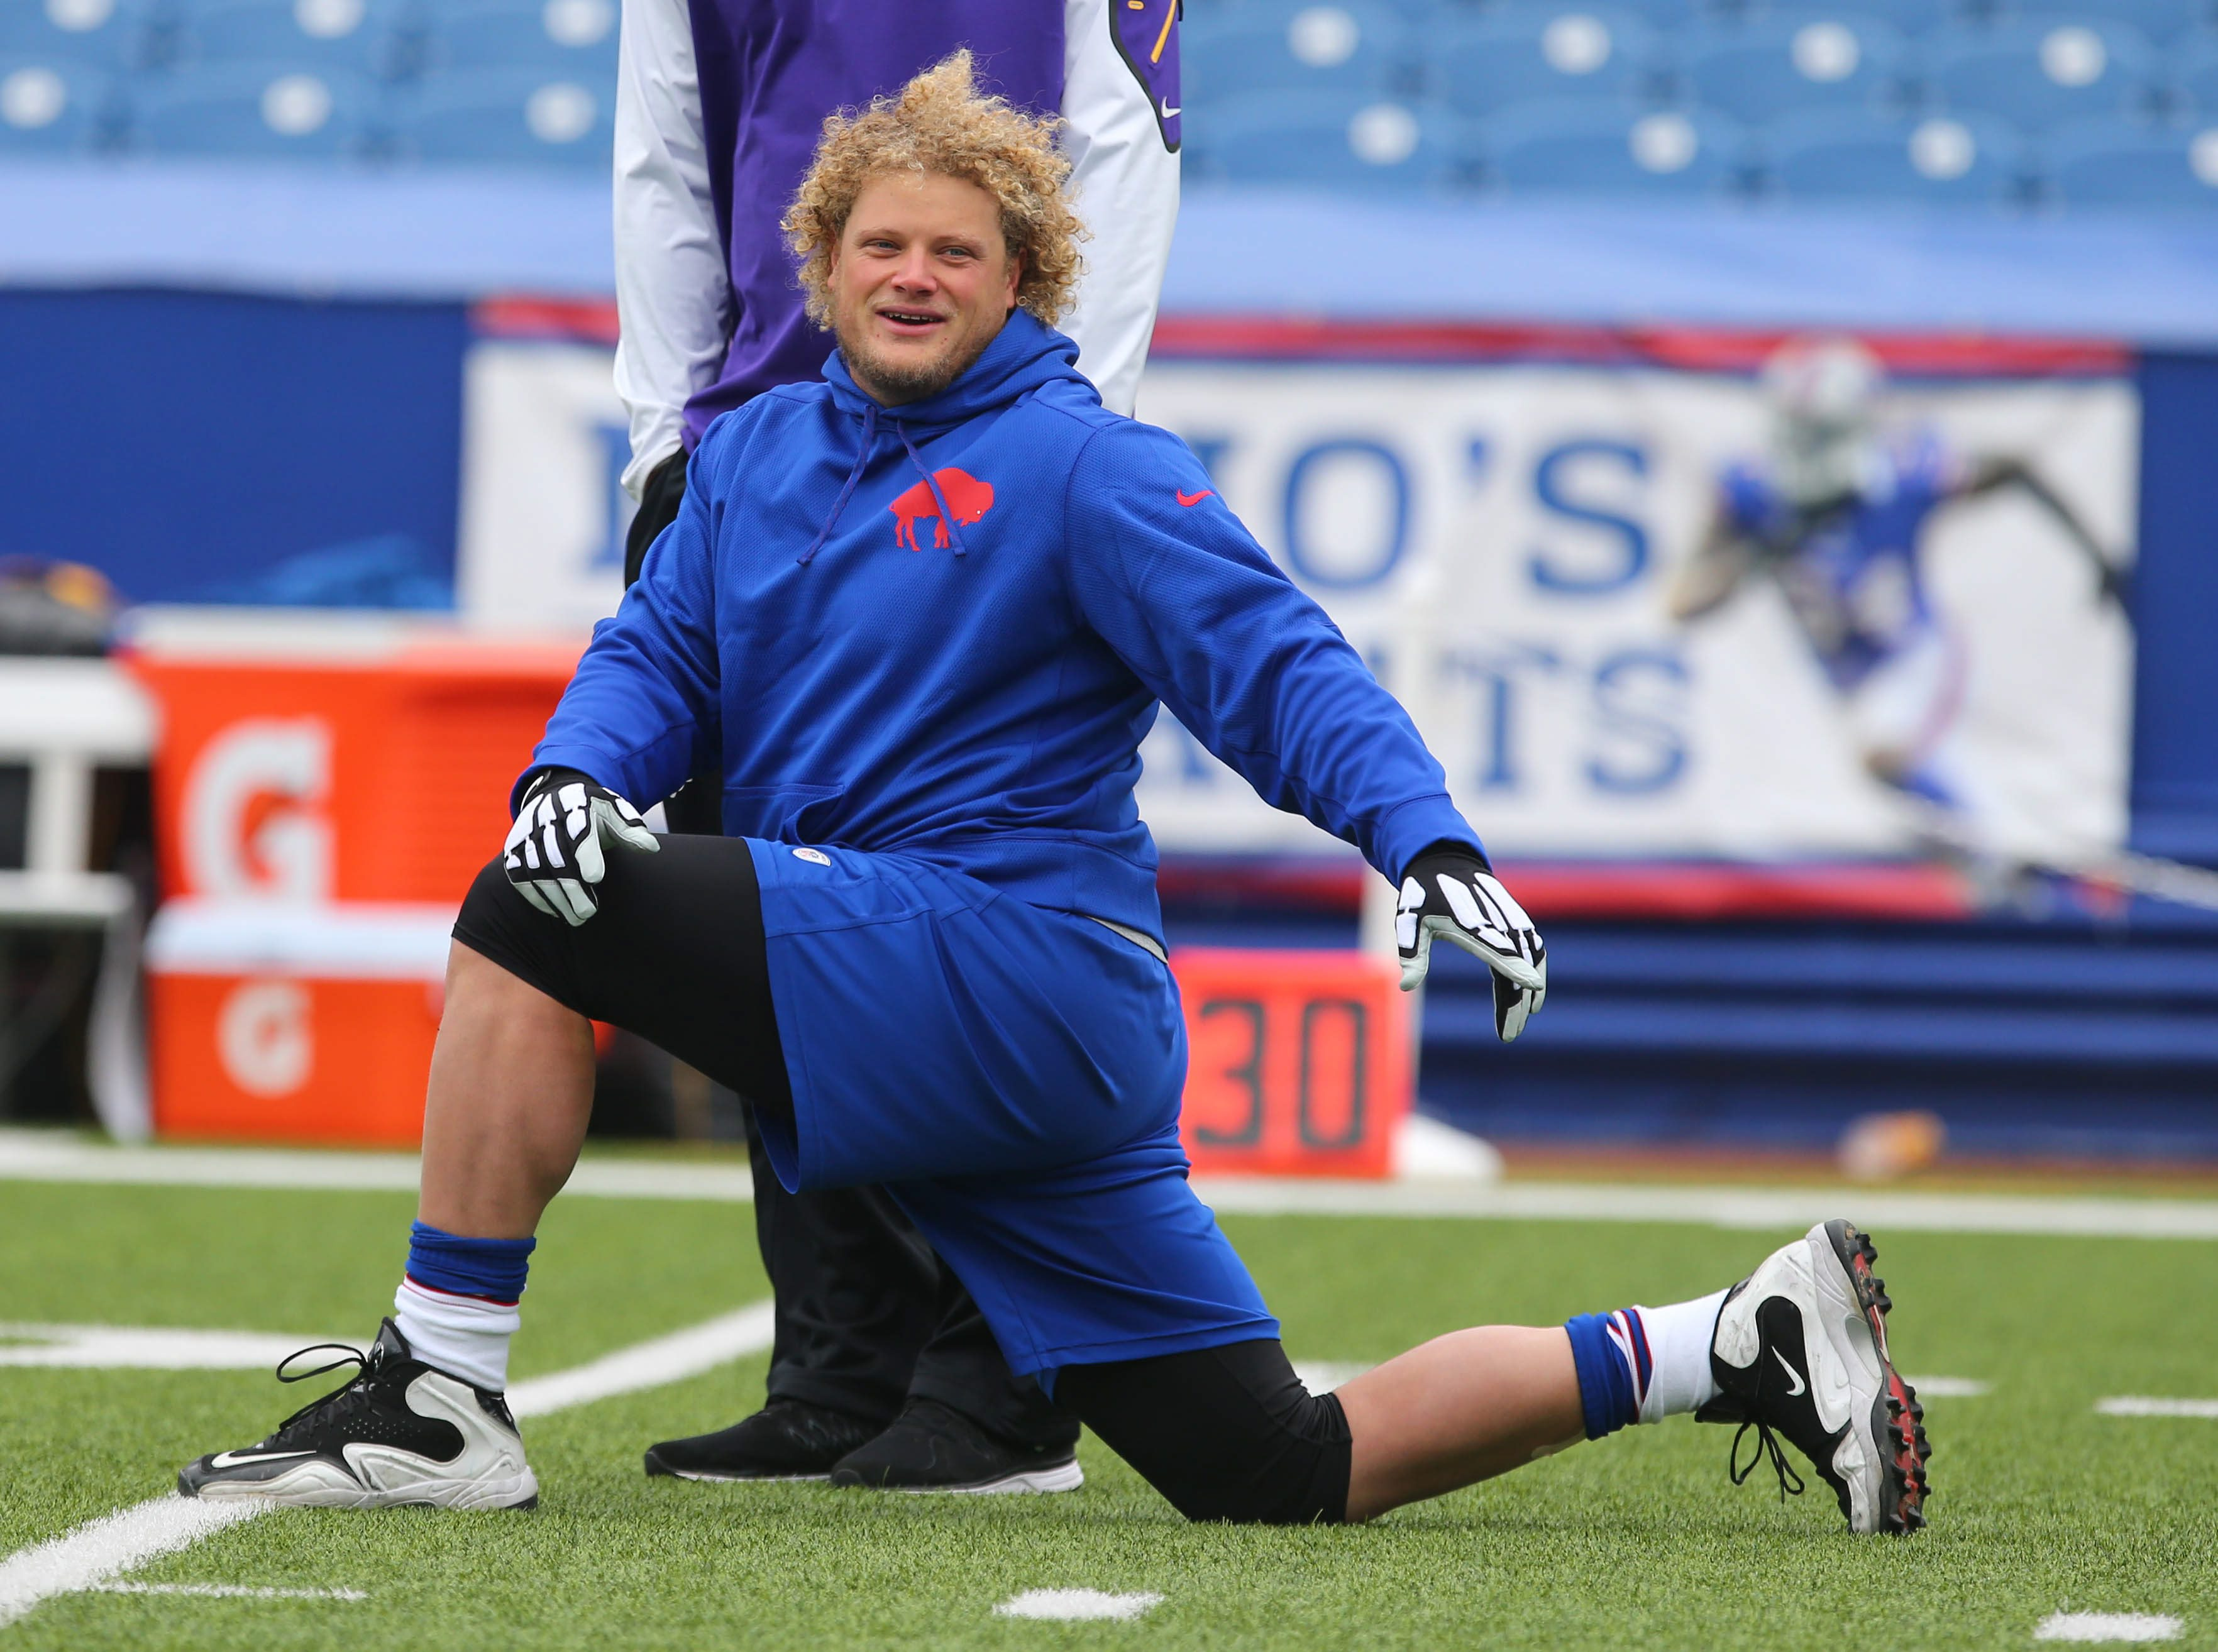 Eric Wood brings stability to center position.